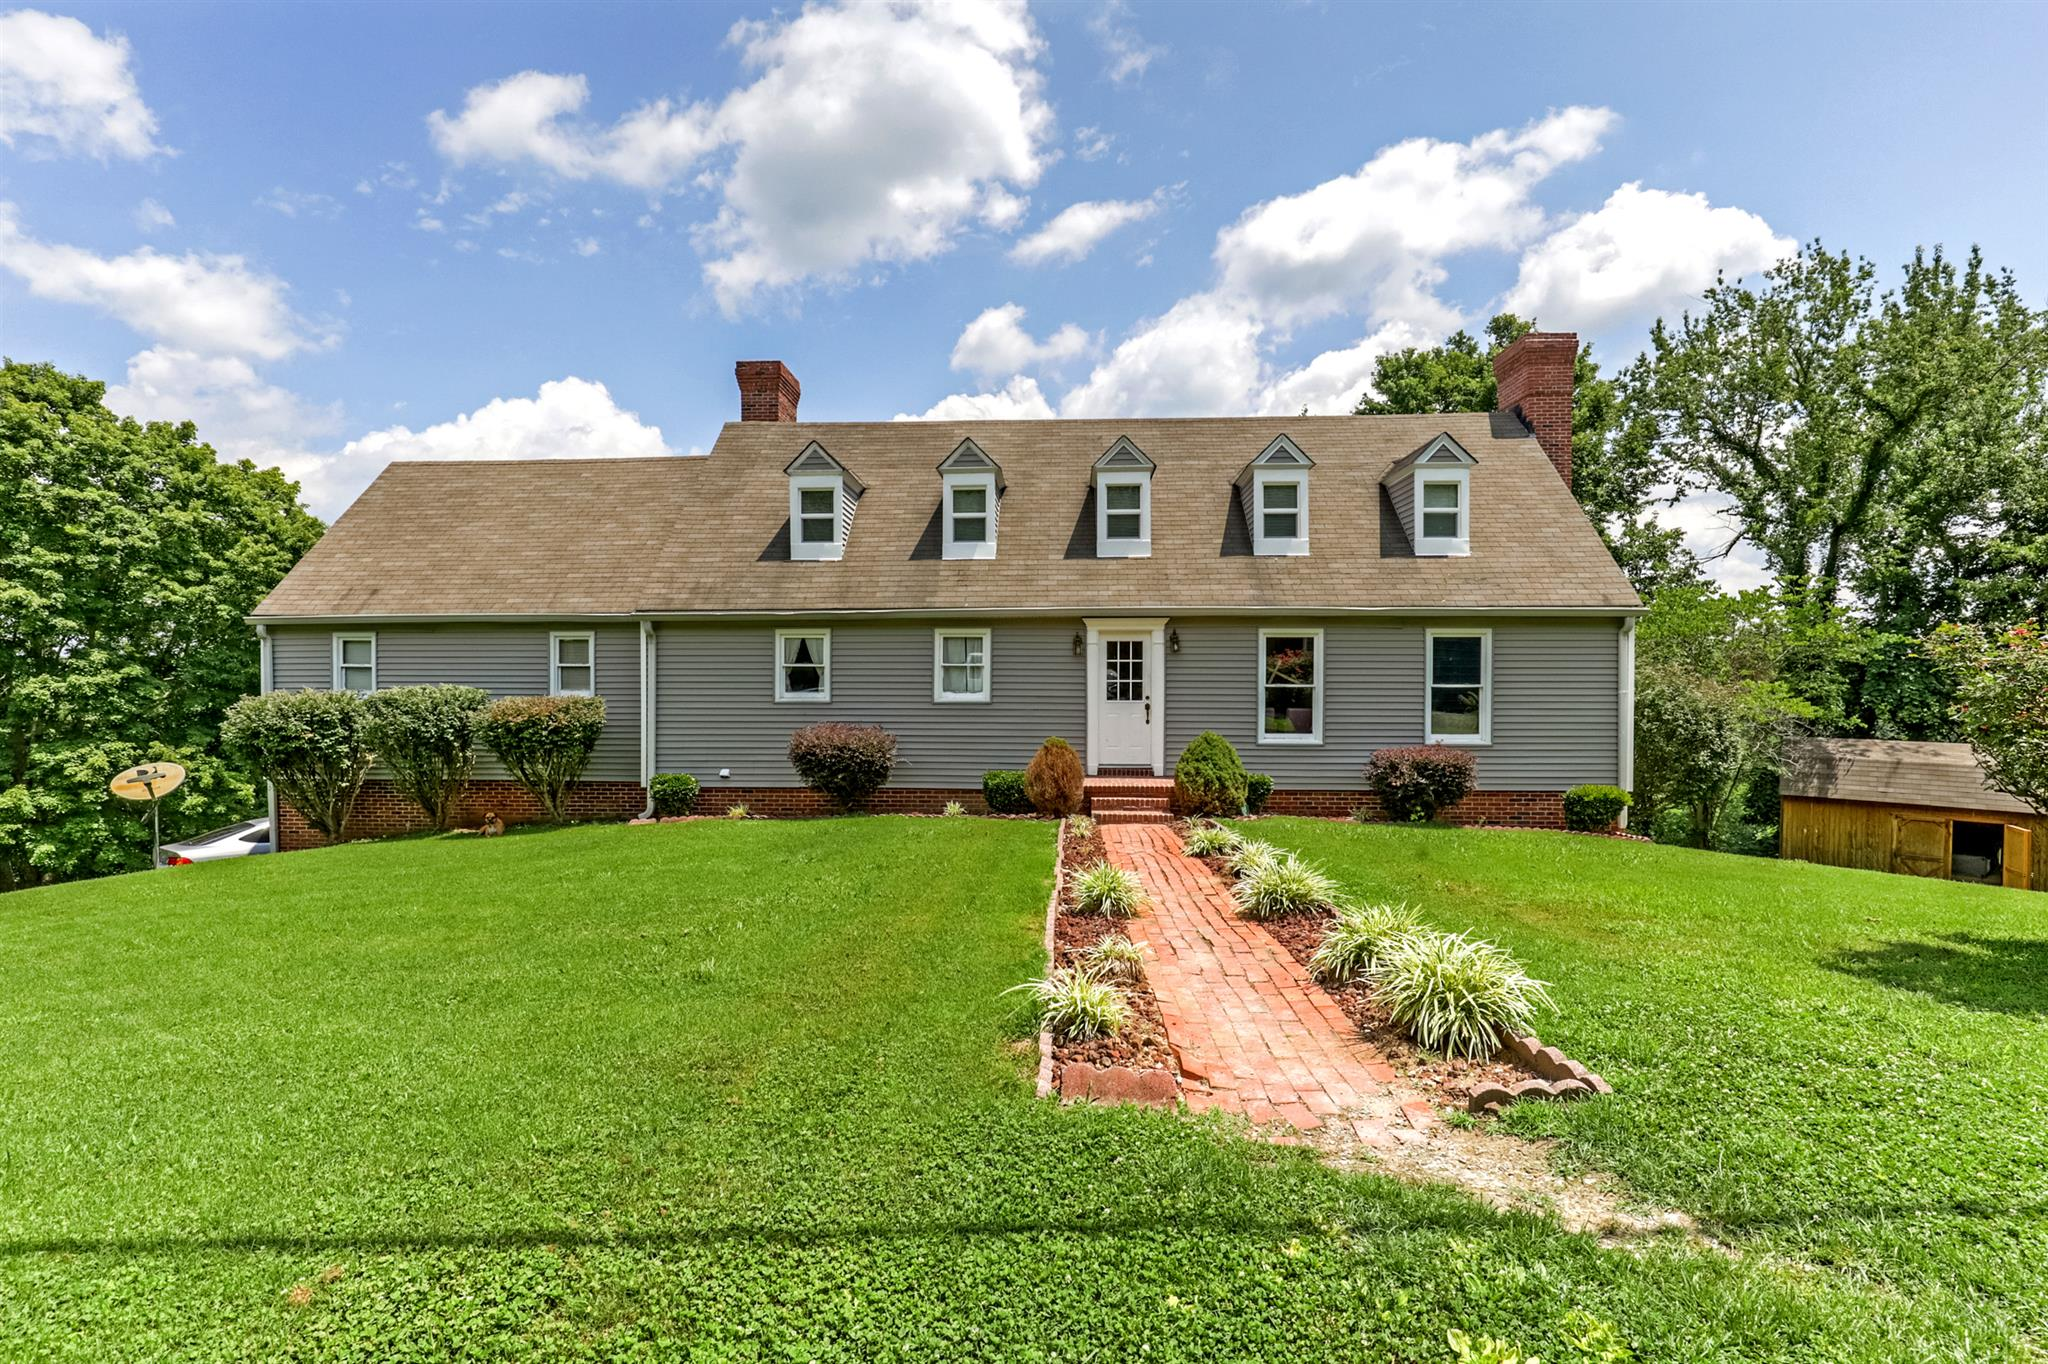 2987 McMinnville Hwy, Woodbury, TN 37190